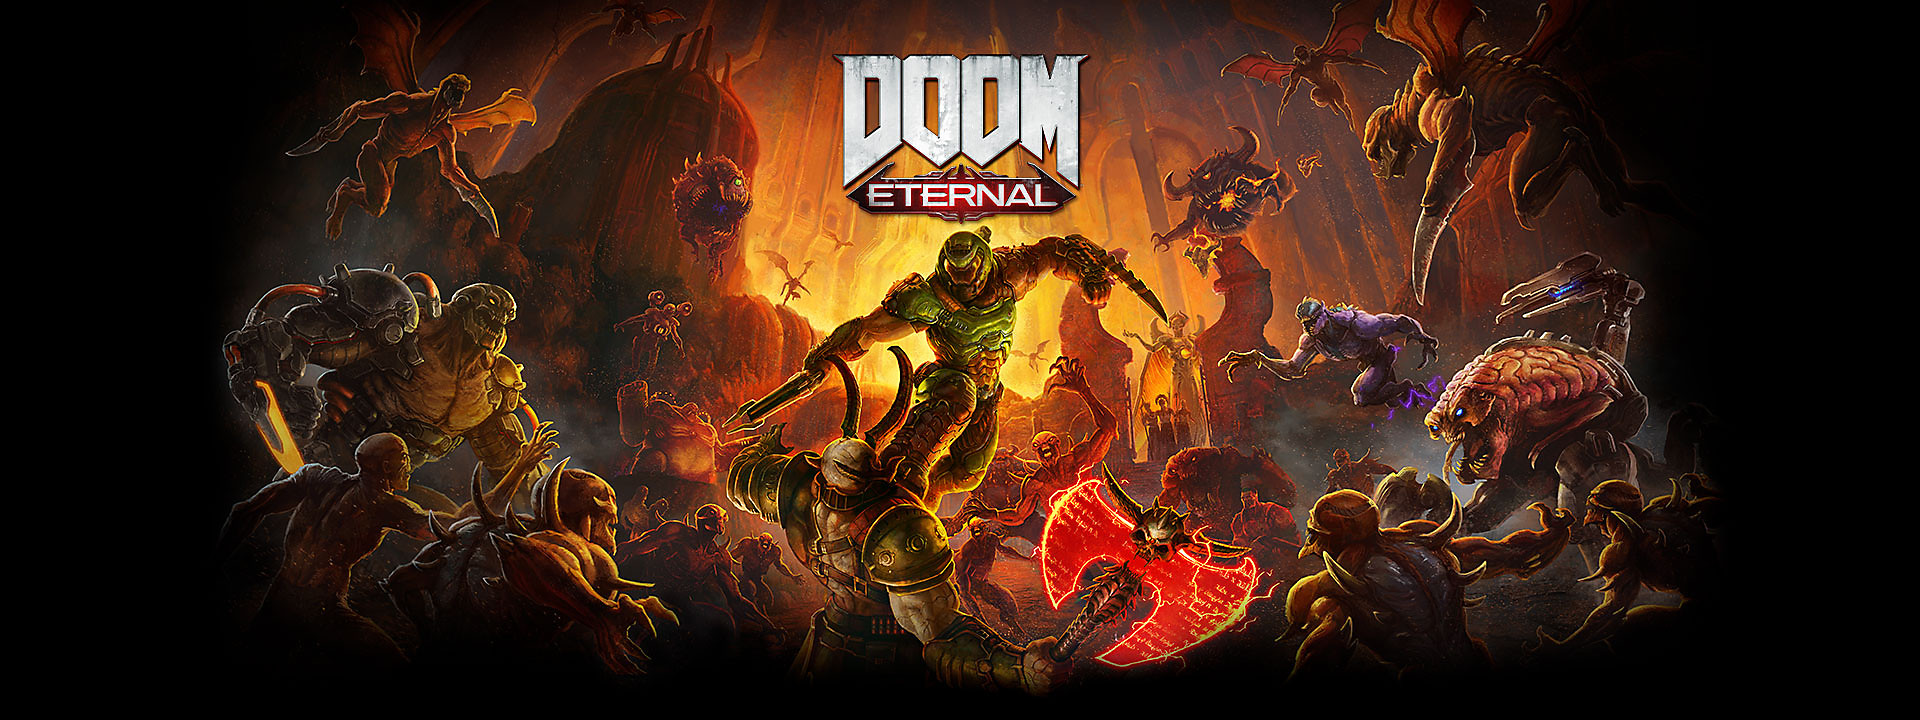 Estandarte de héroe de DOOM Eternal